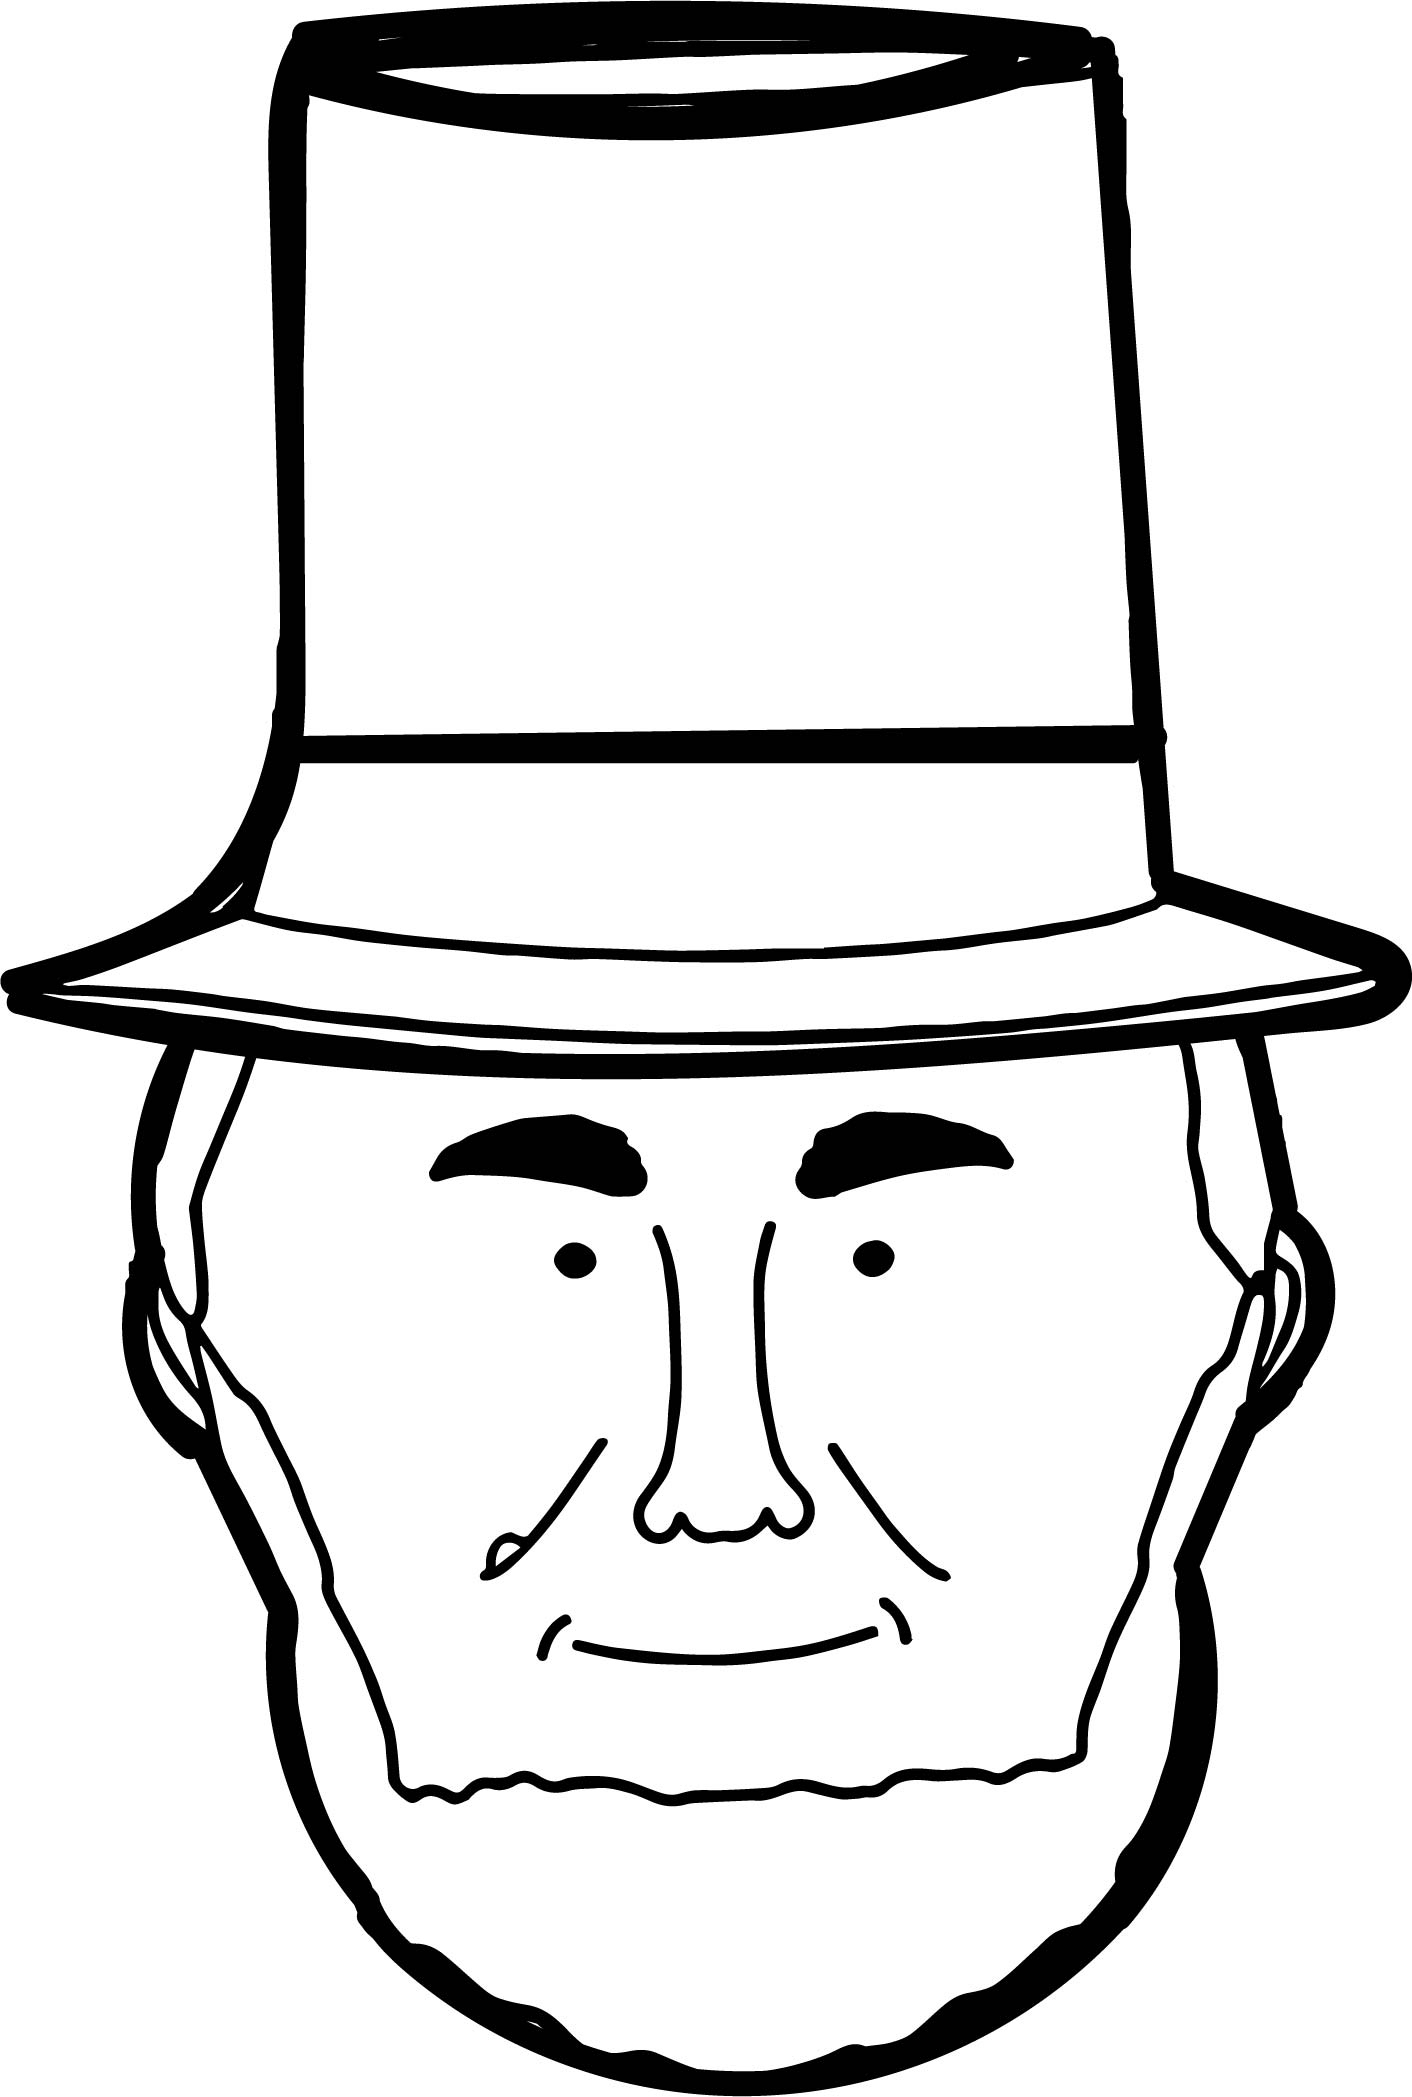 coloring pages abraham lincoln - abraham lincoln face president coloring page